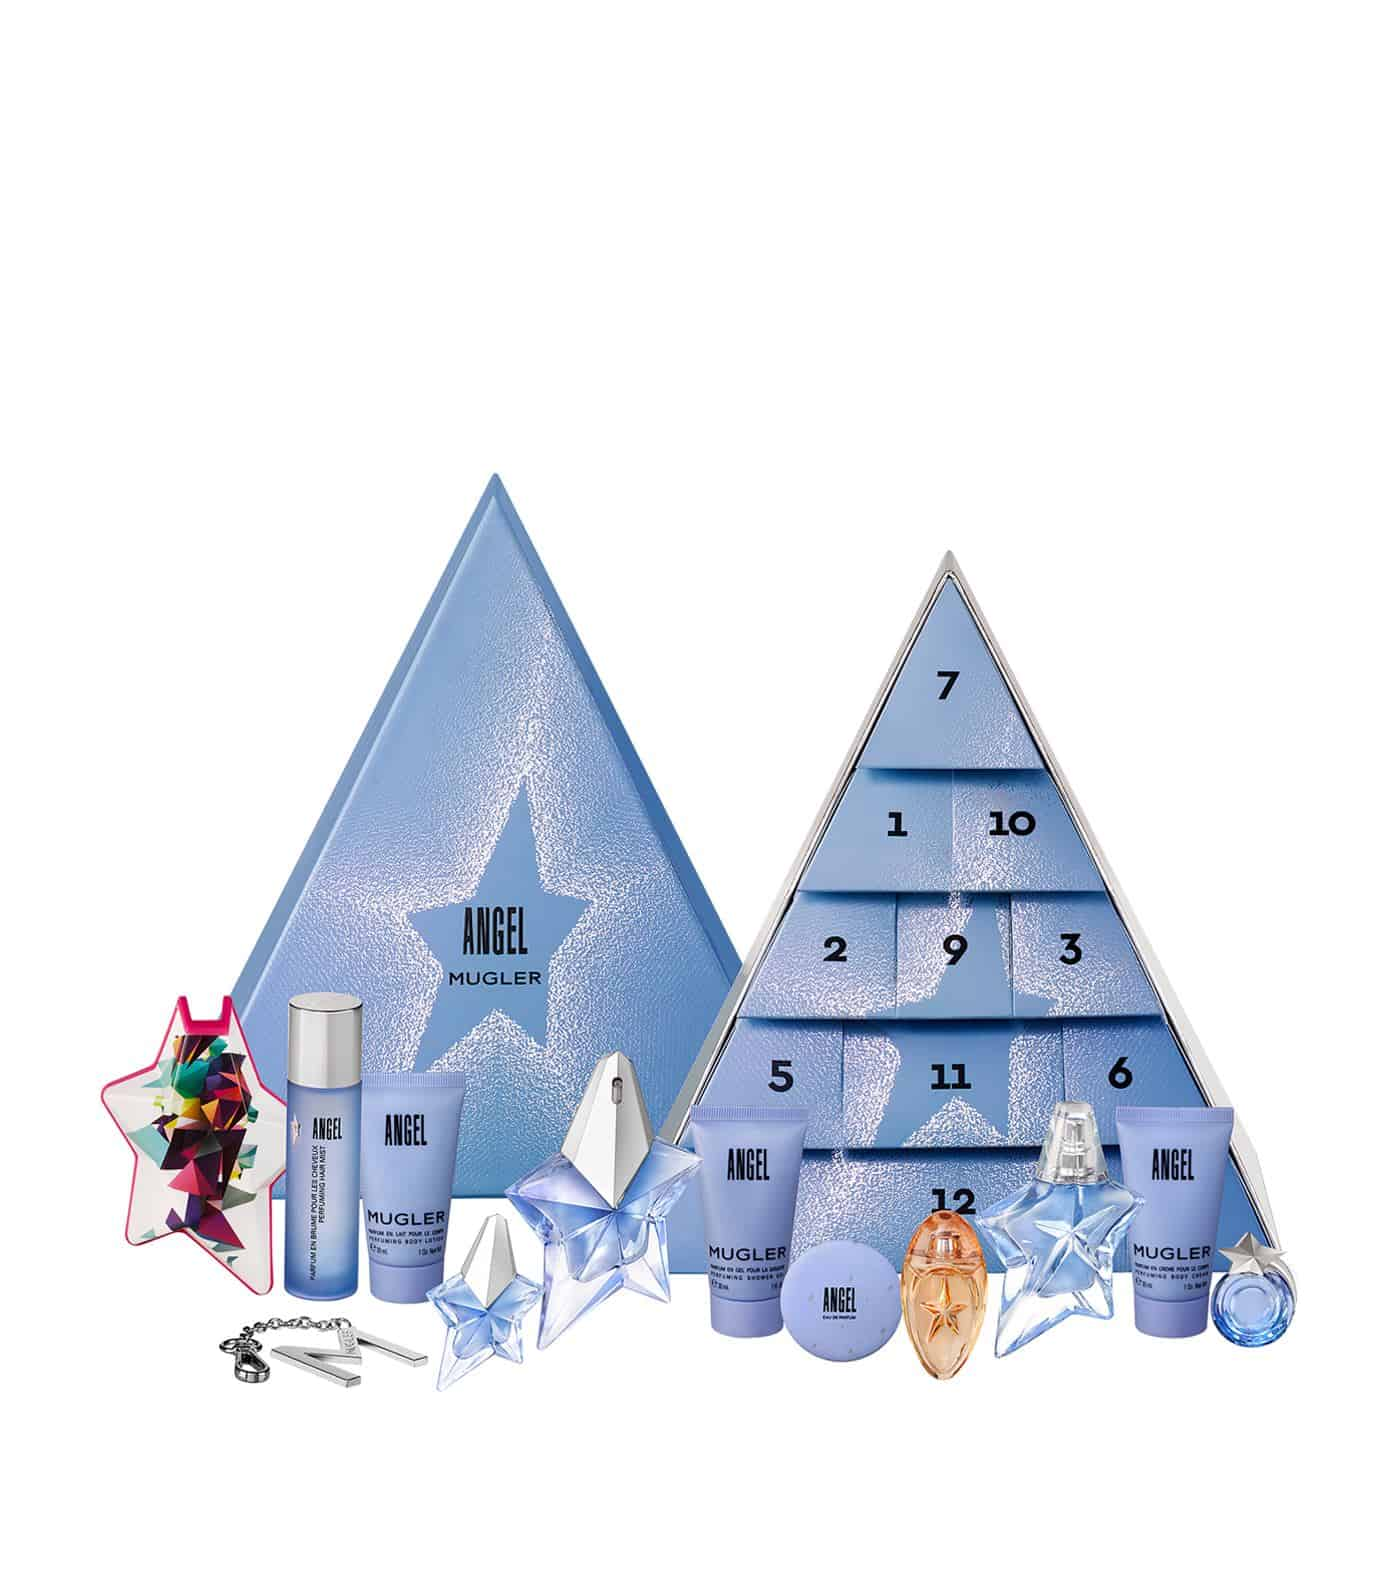 Mugler Angel Advent Calendar